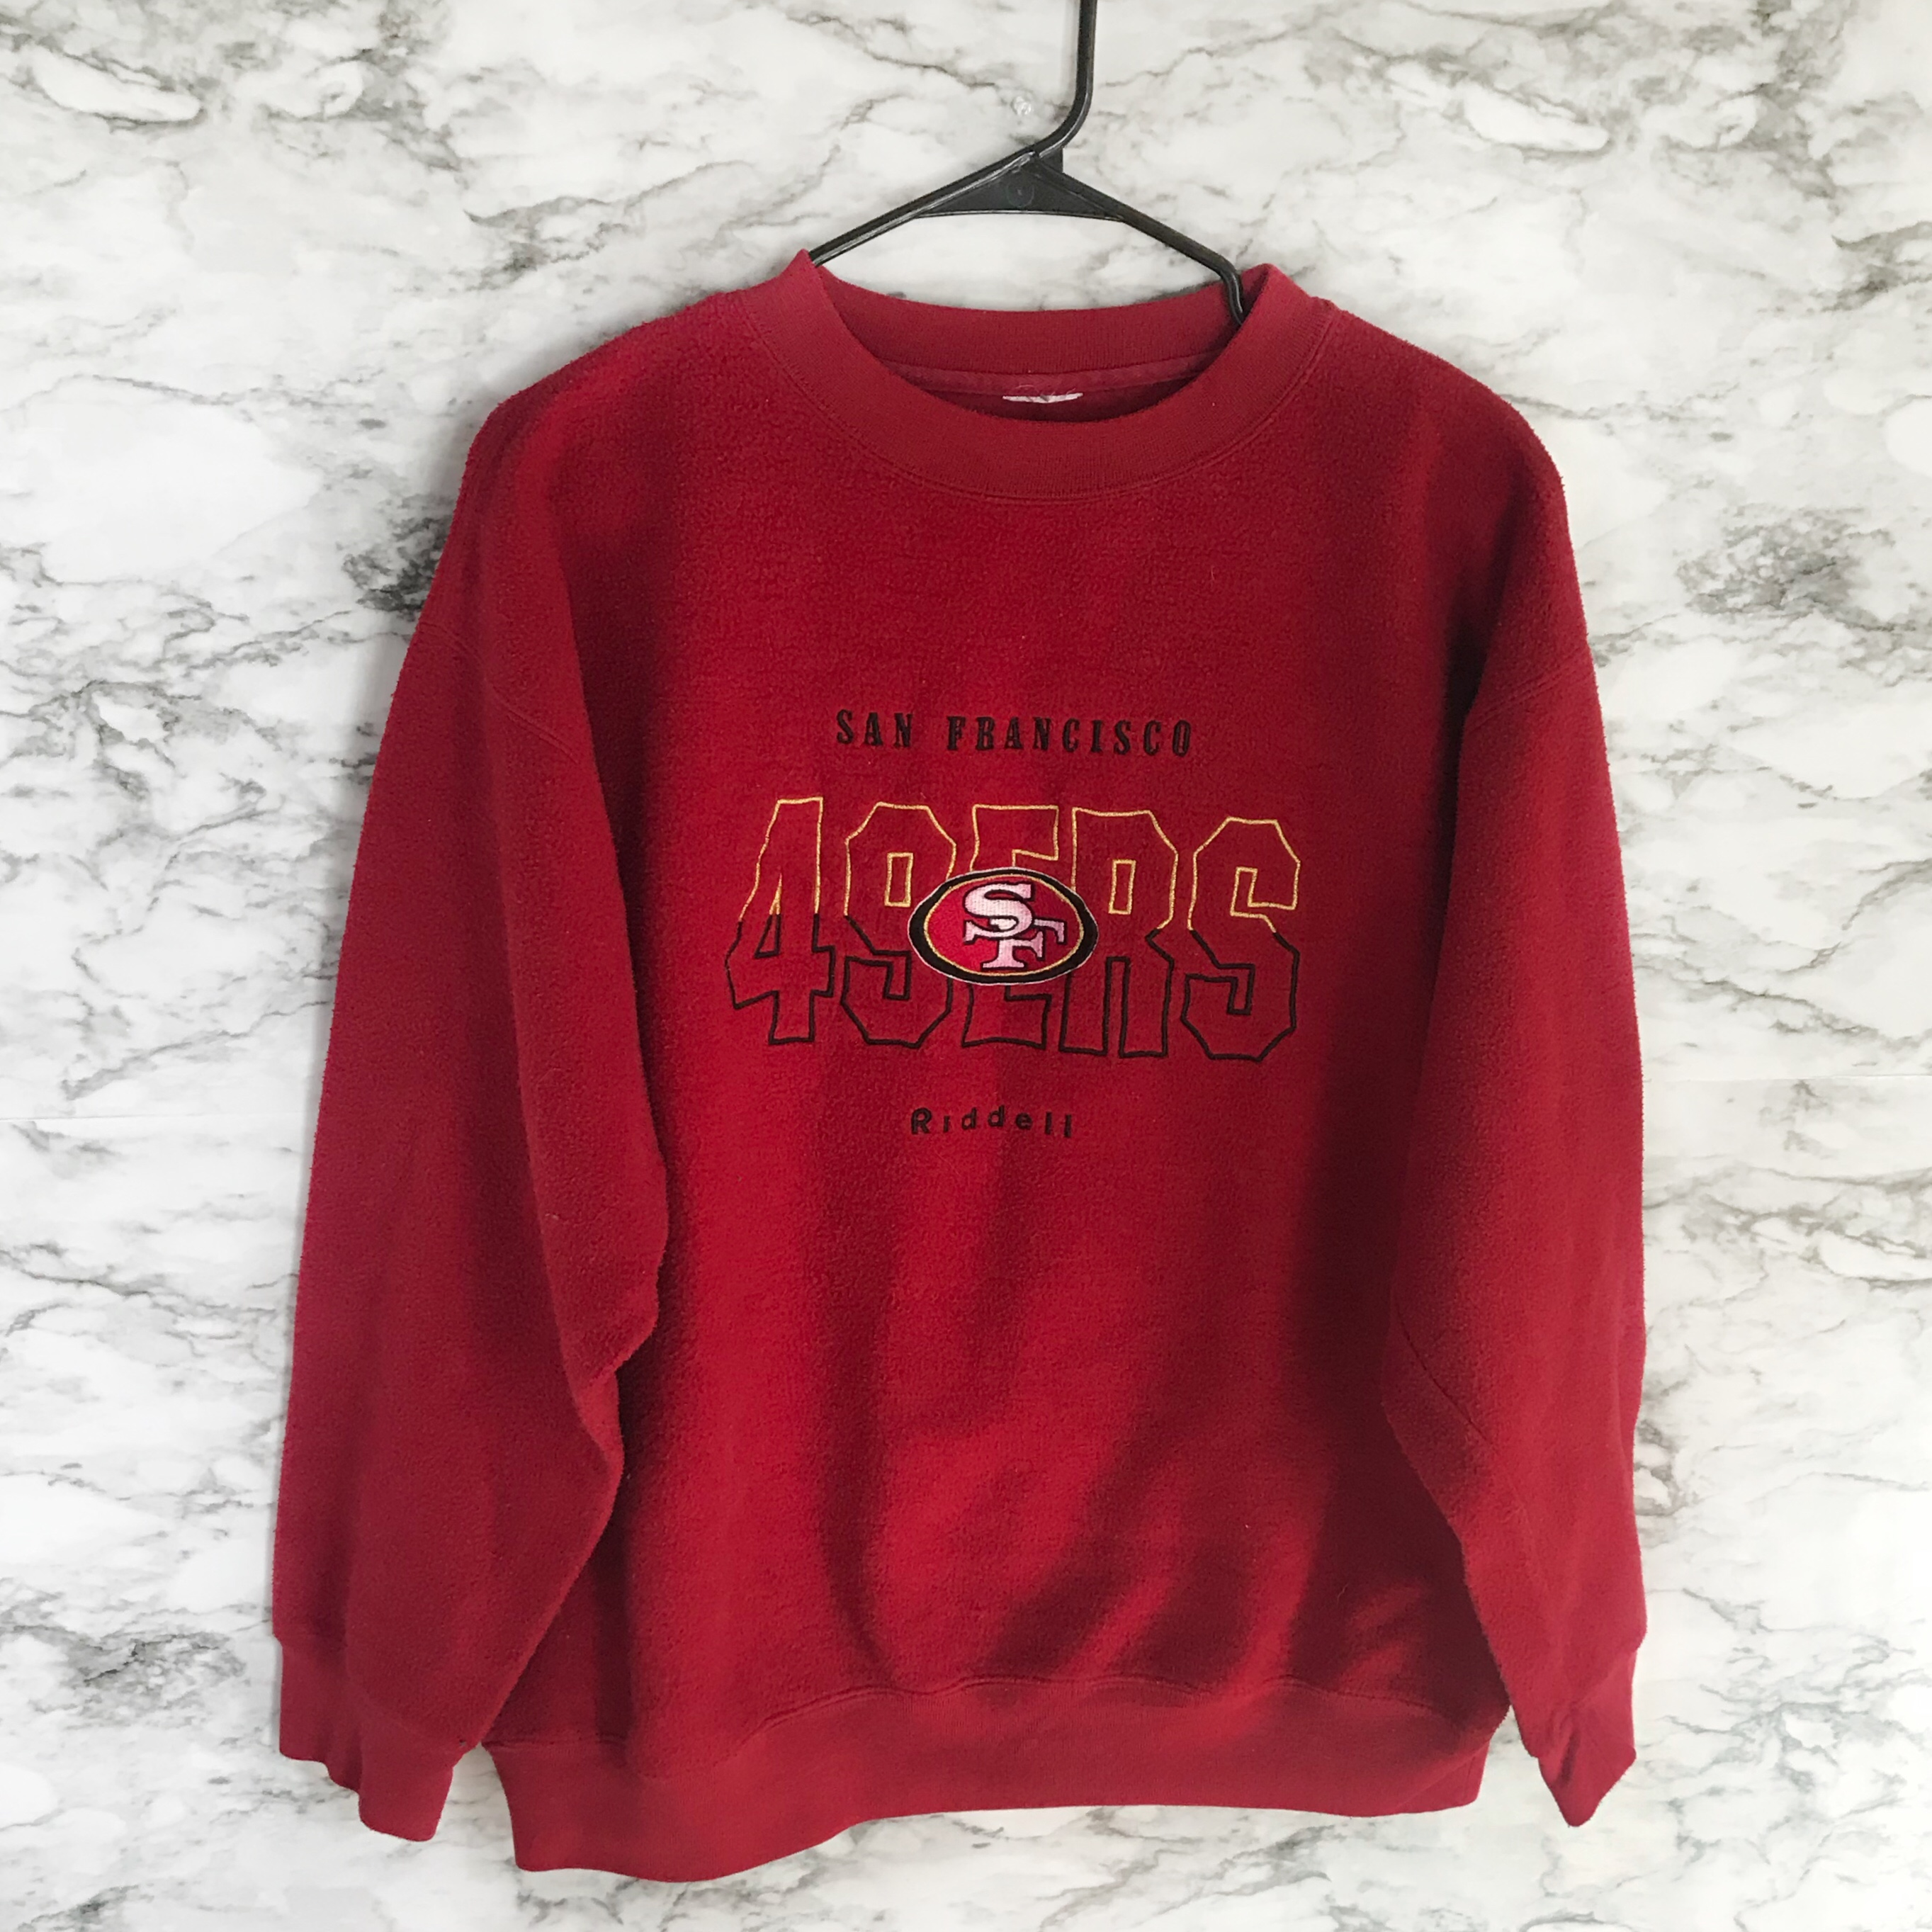 hot sale online d6aa8 5616e VINTAGE SAN FRANCISCO 49ERS SWEATER🌉🏈 In perfect... - Depop